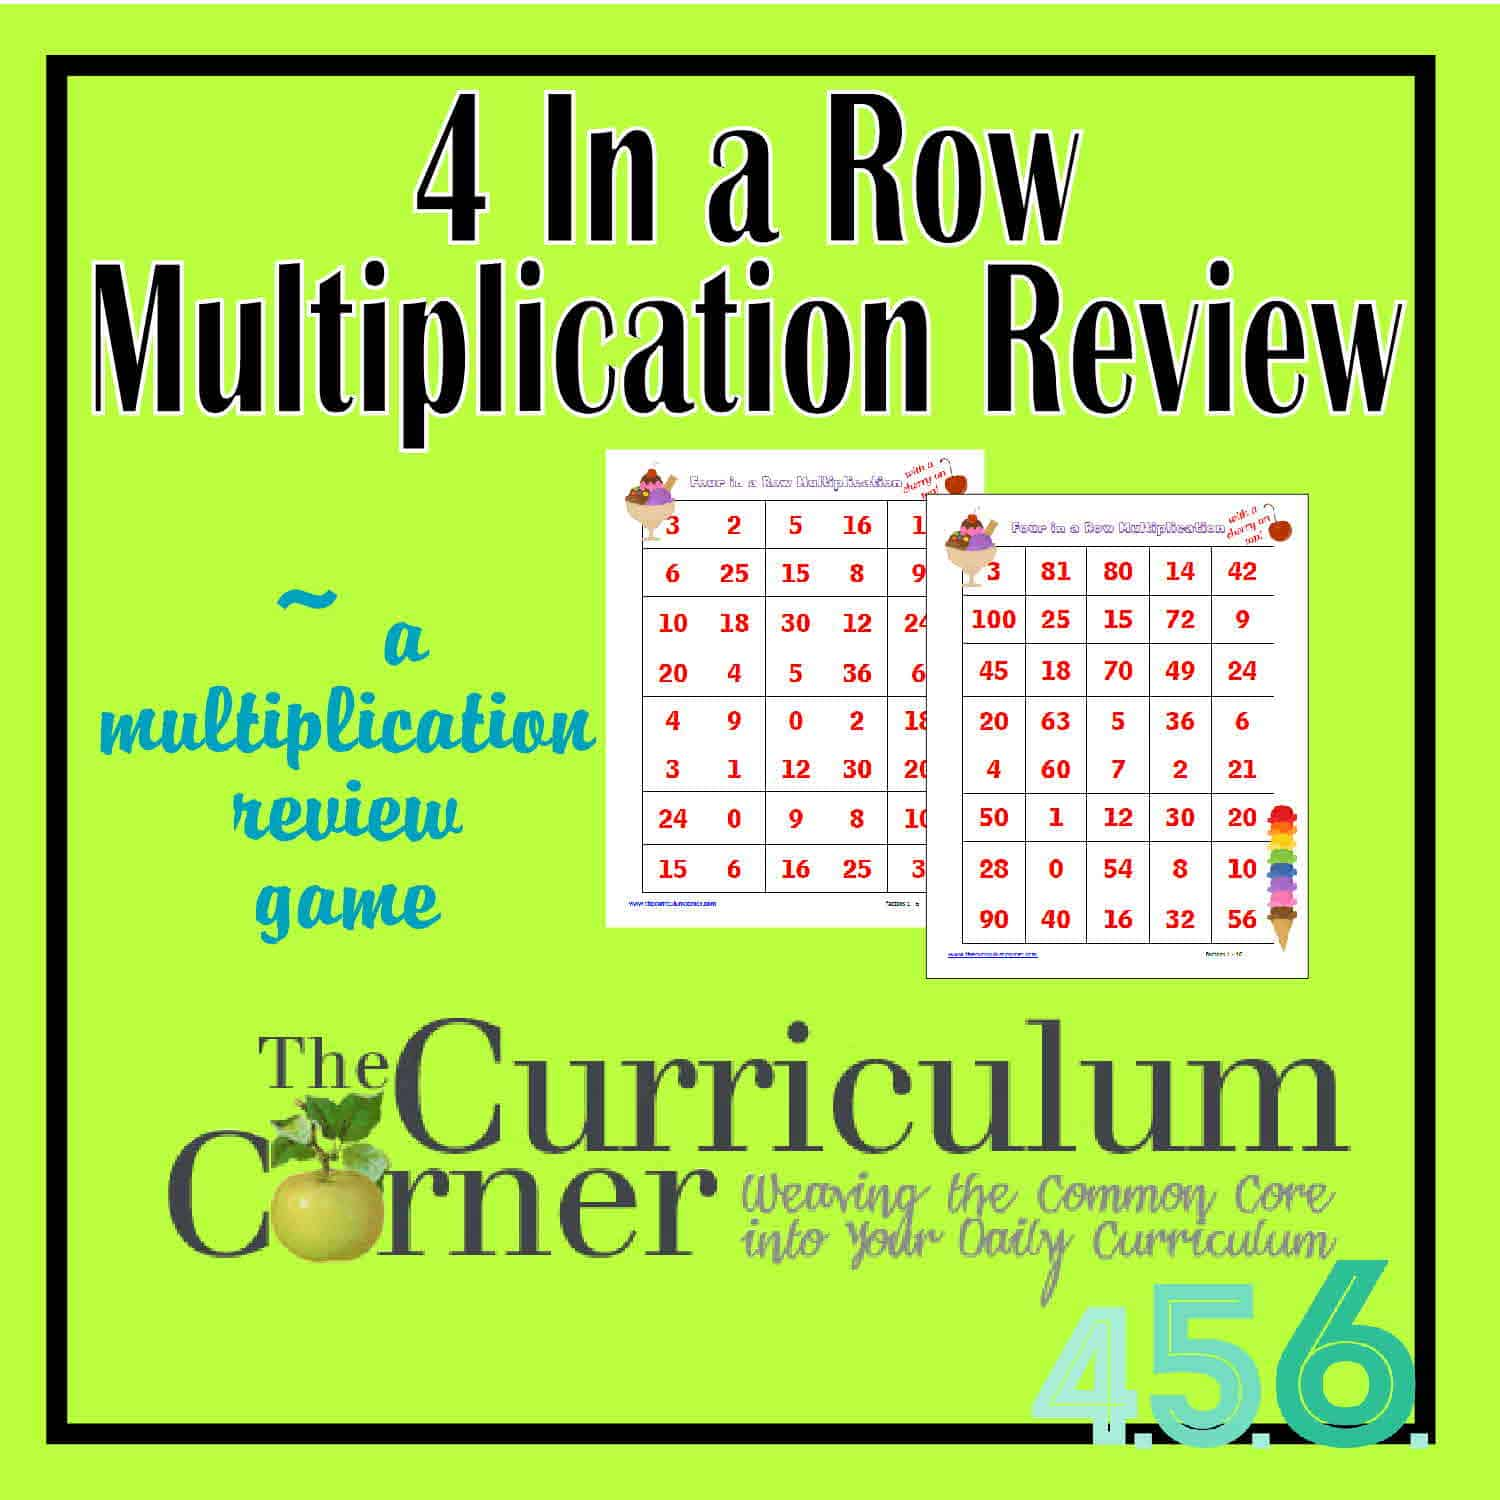 4 In a Row Math Fact Review Games - The Curriculum Corner 4-5-6